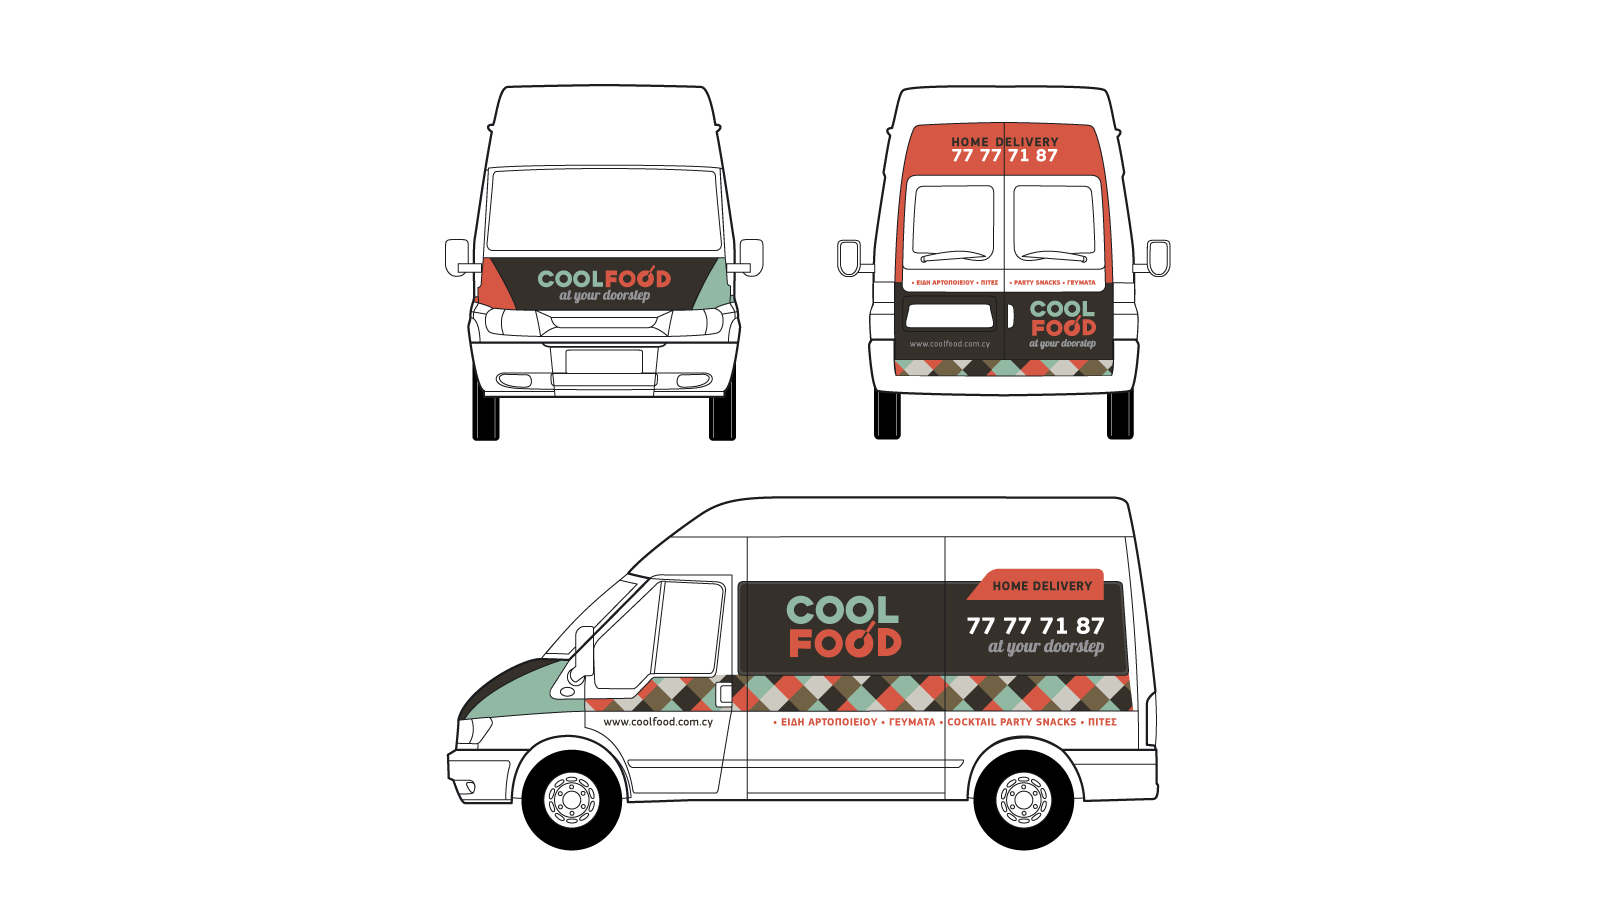 coolfood_06.png